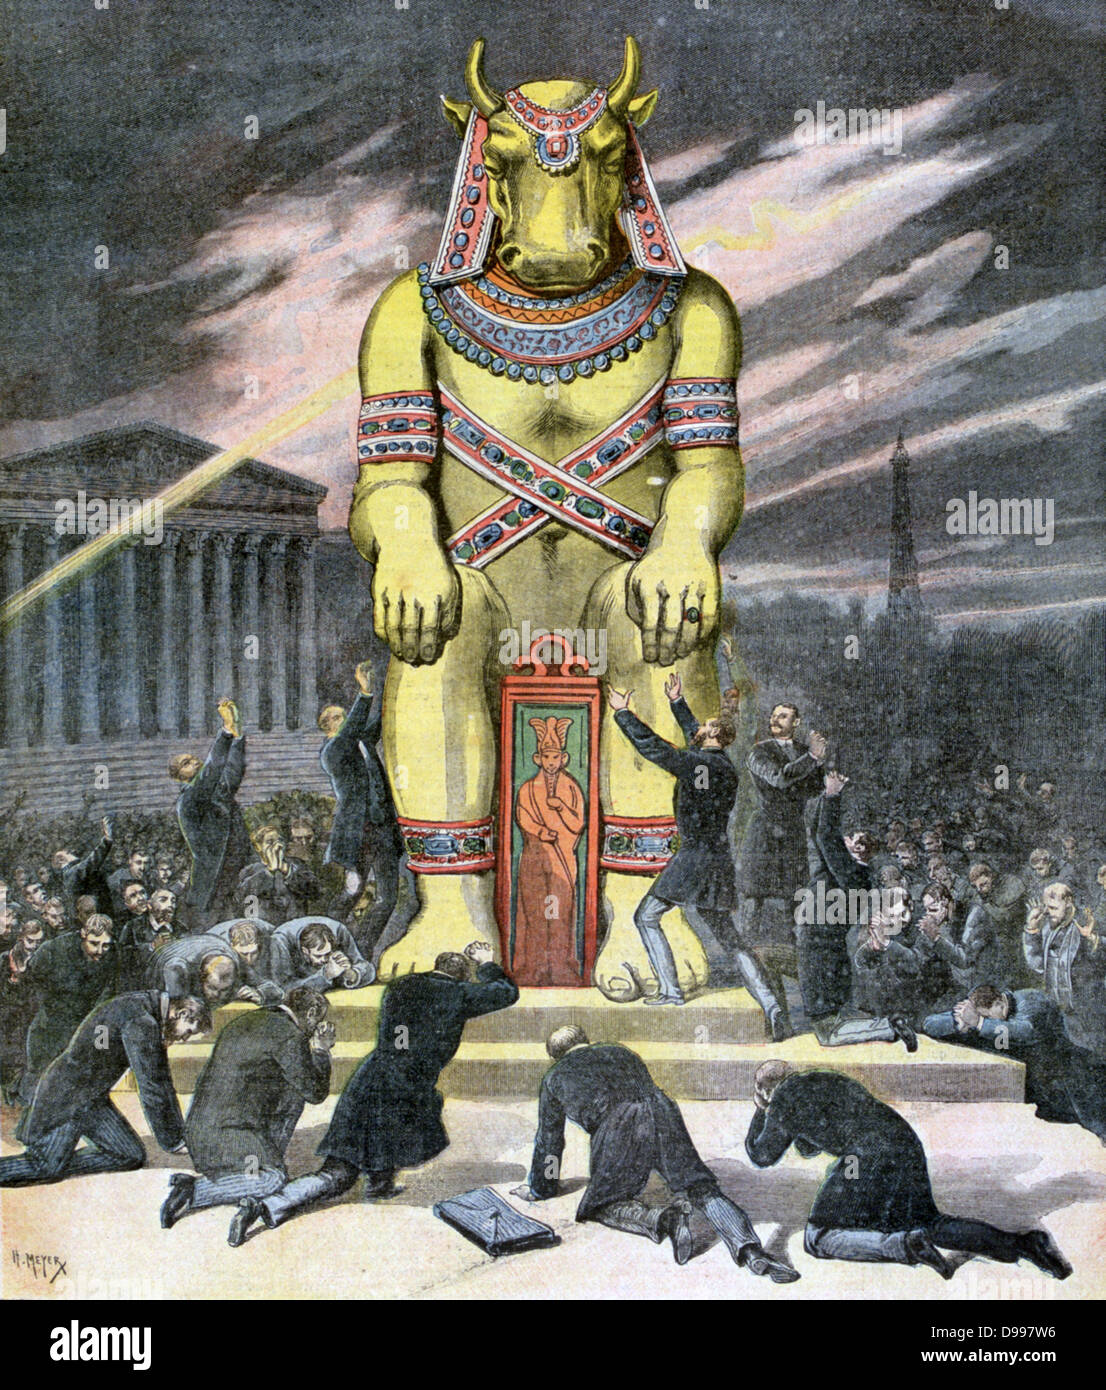 The Golden Calf:  The worship of riches.  From 'Le Petit Journal', Paris, 21 December 1892. - Stock Image